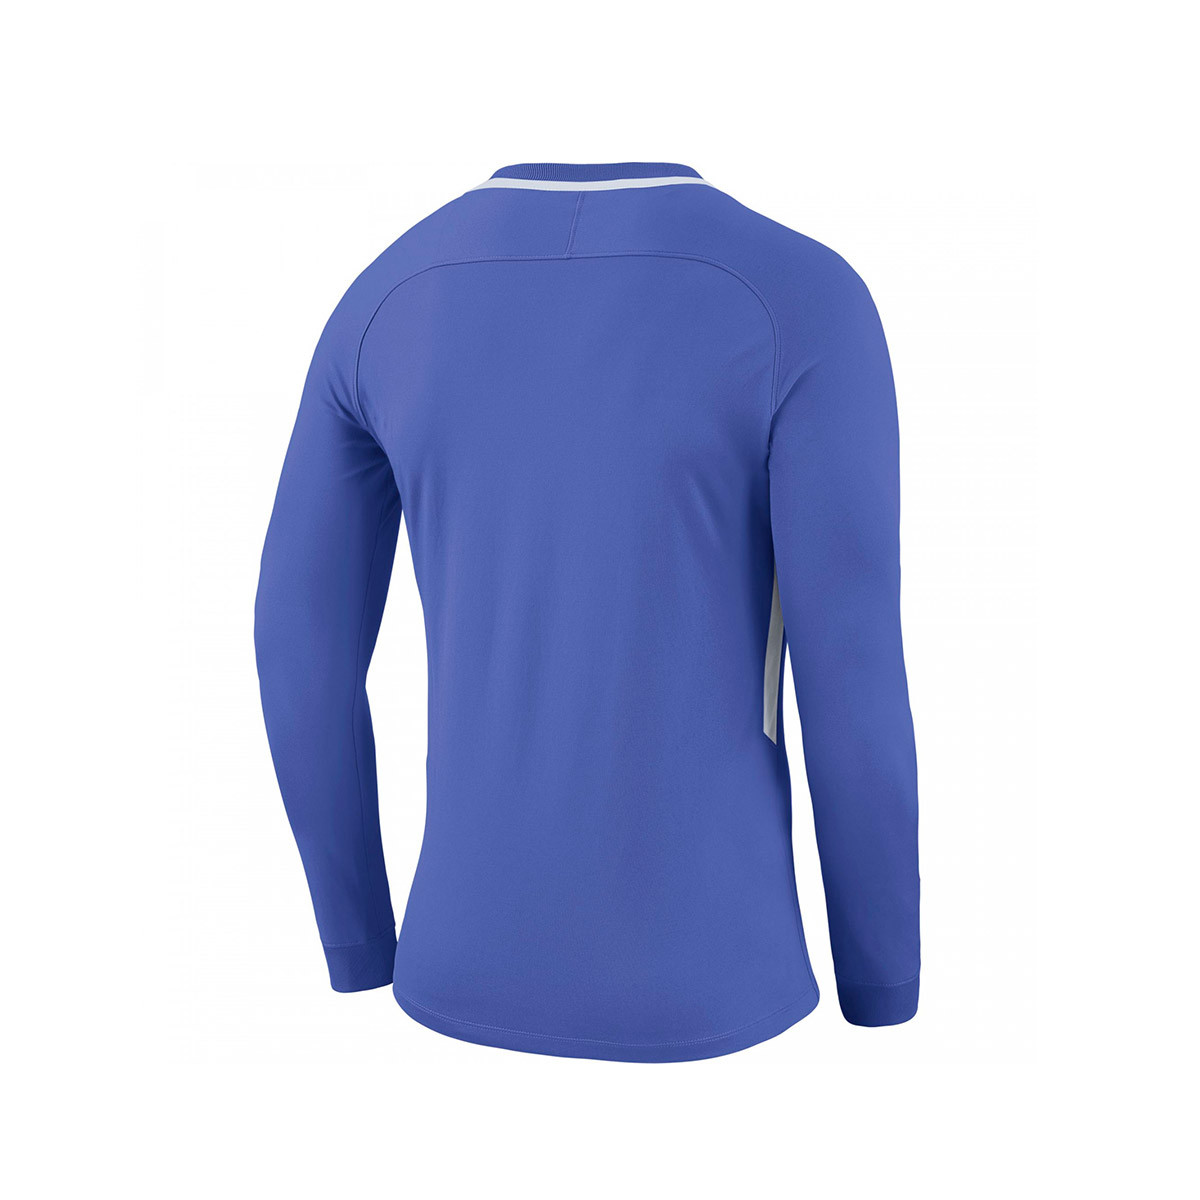 a3946b735 Jersey Nike Kids Park Goalie III m/l Persian violet - Football store Fútbol  Emotion